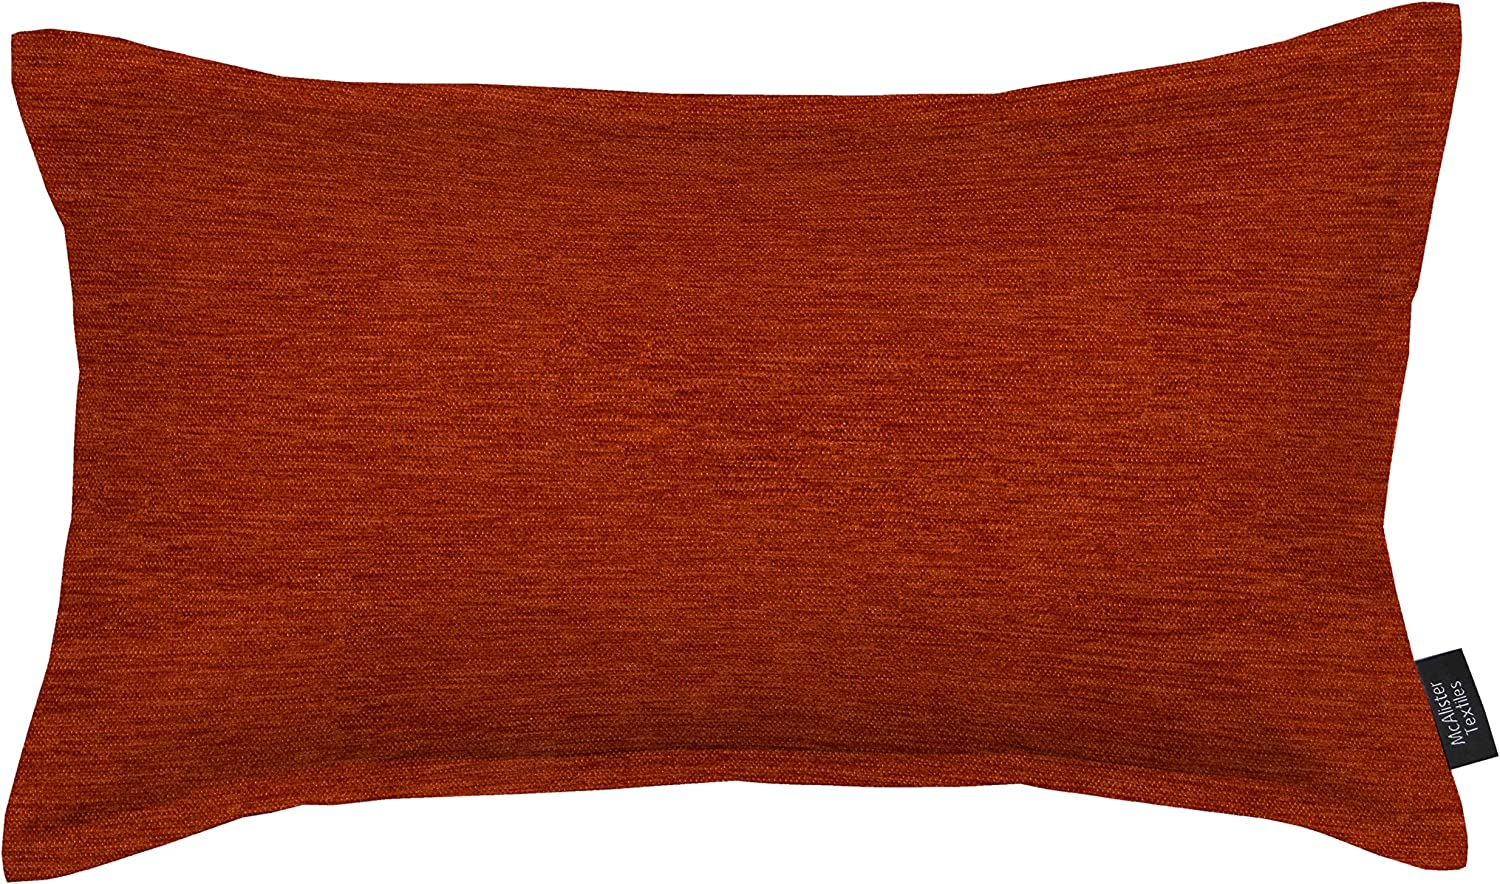 McAlister Textiles Solid Color Chenille Pillow Cover | Terracotta Orange Soft Woven Solid Color Color Holiday Decor Throw Lumbar Cushion | Size - 20 x 12 Inches